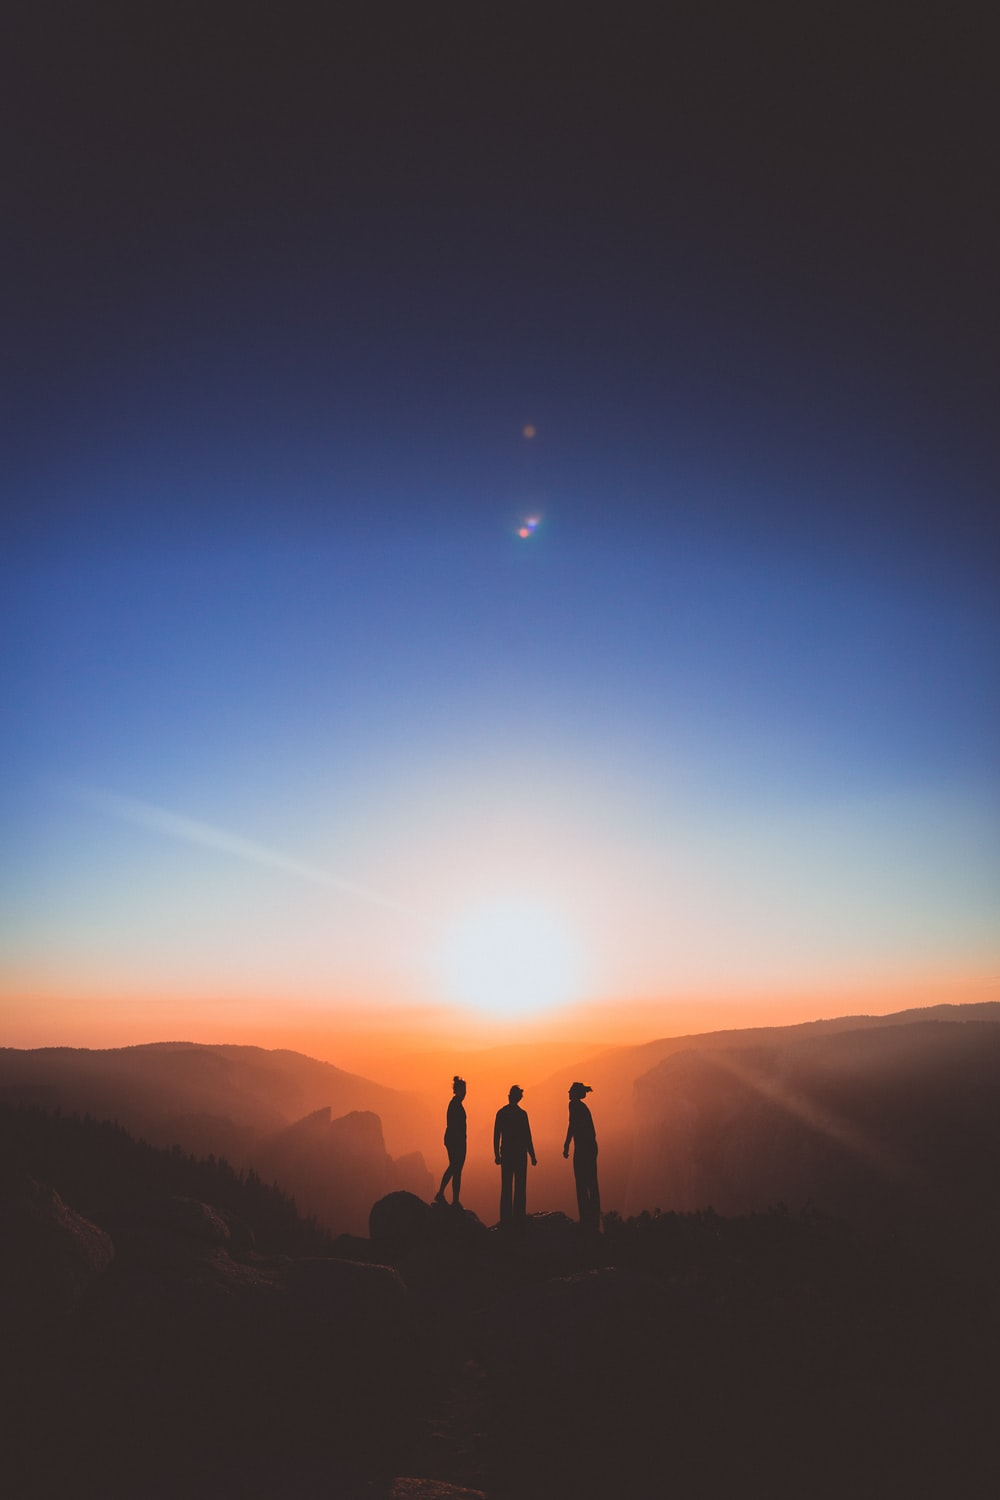 silhouette of three person standing on mountain